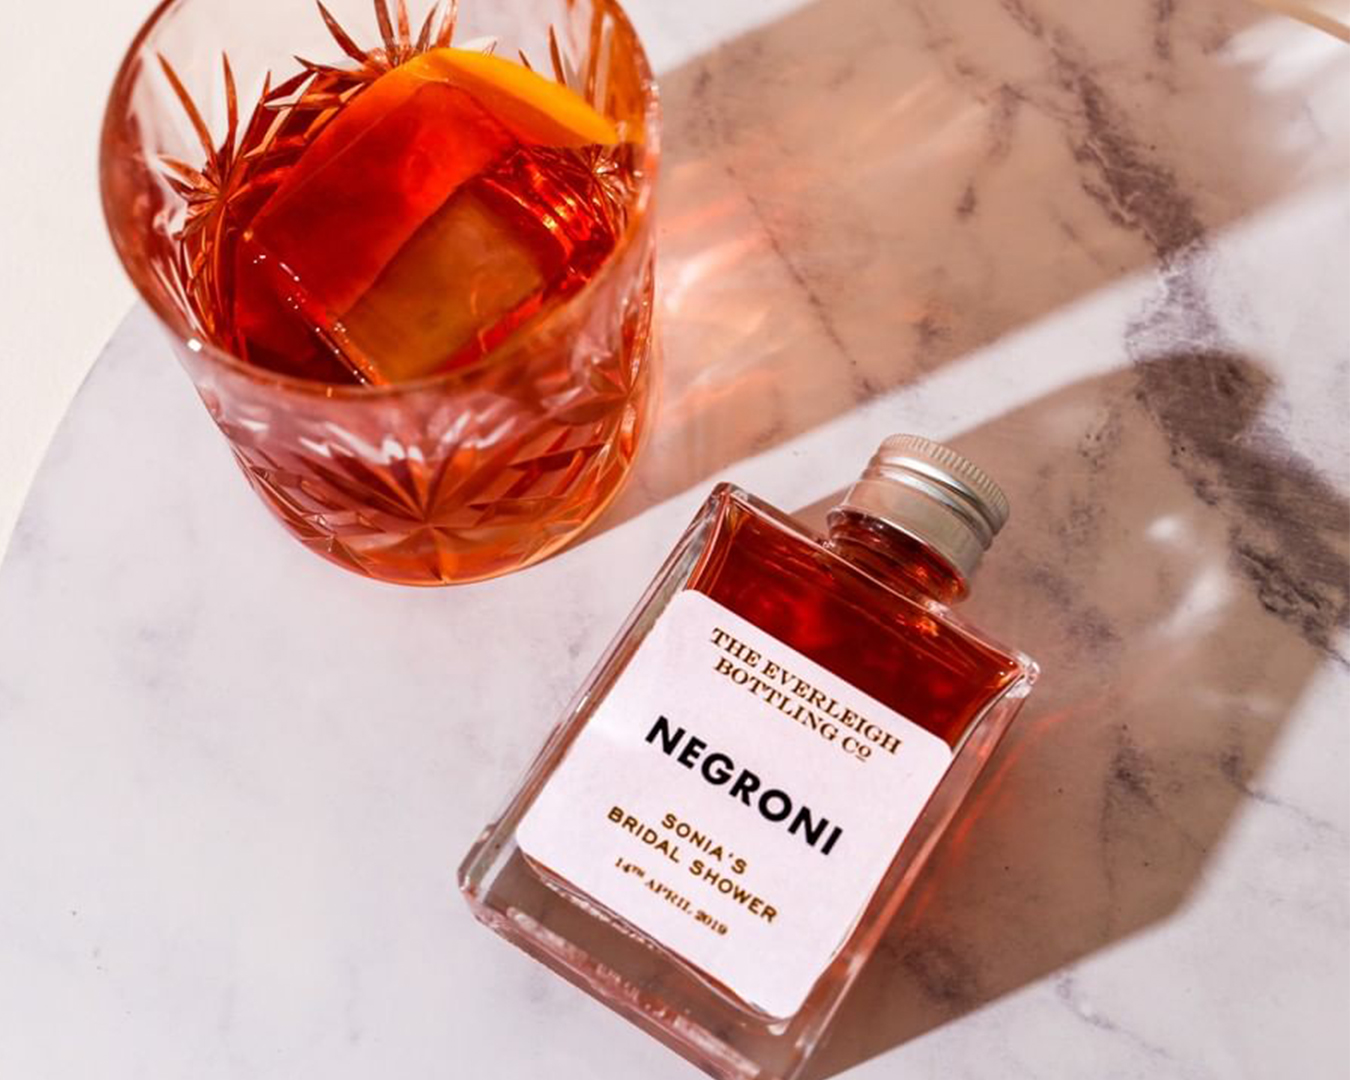 A glass and small bottle of negroni lay on a marble table.